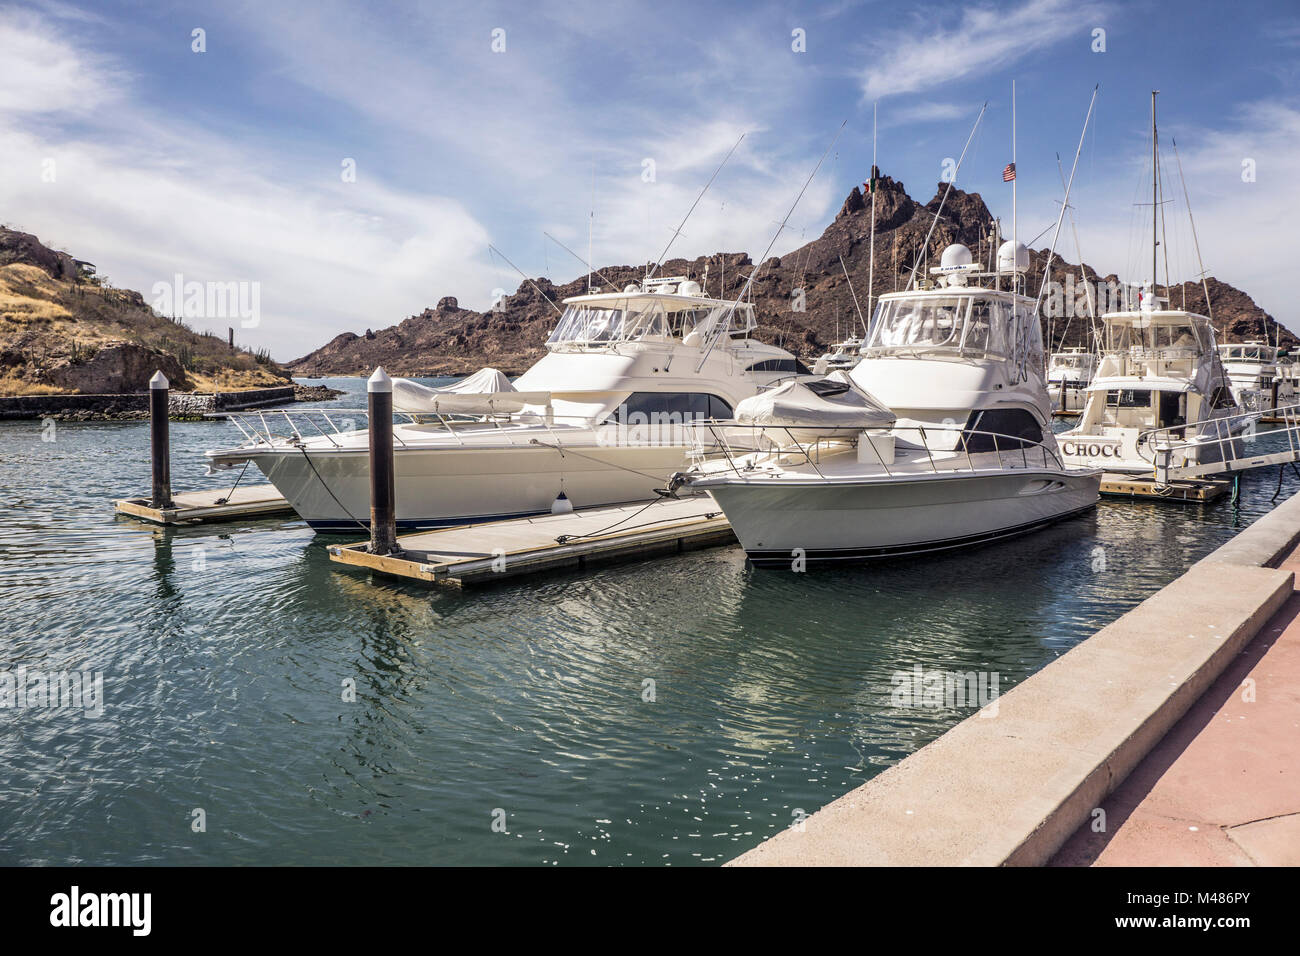 entrance to spacious San Carlos Marina with sleek groomed deep sea fishing pleasure boats moored at outer tiers - Stock Image